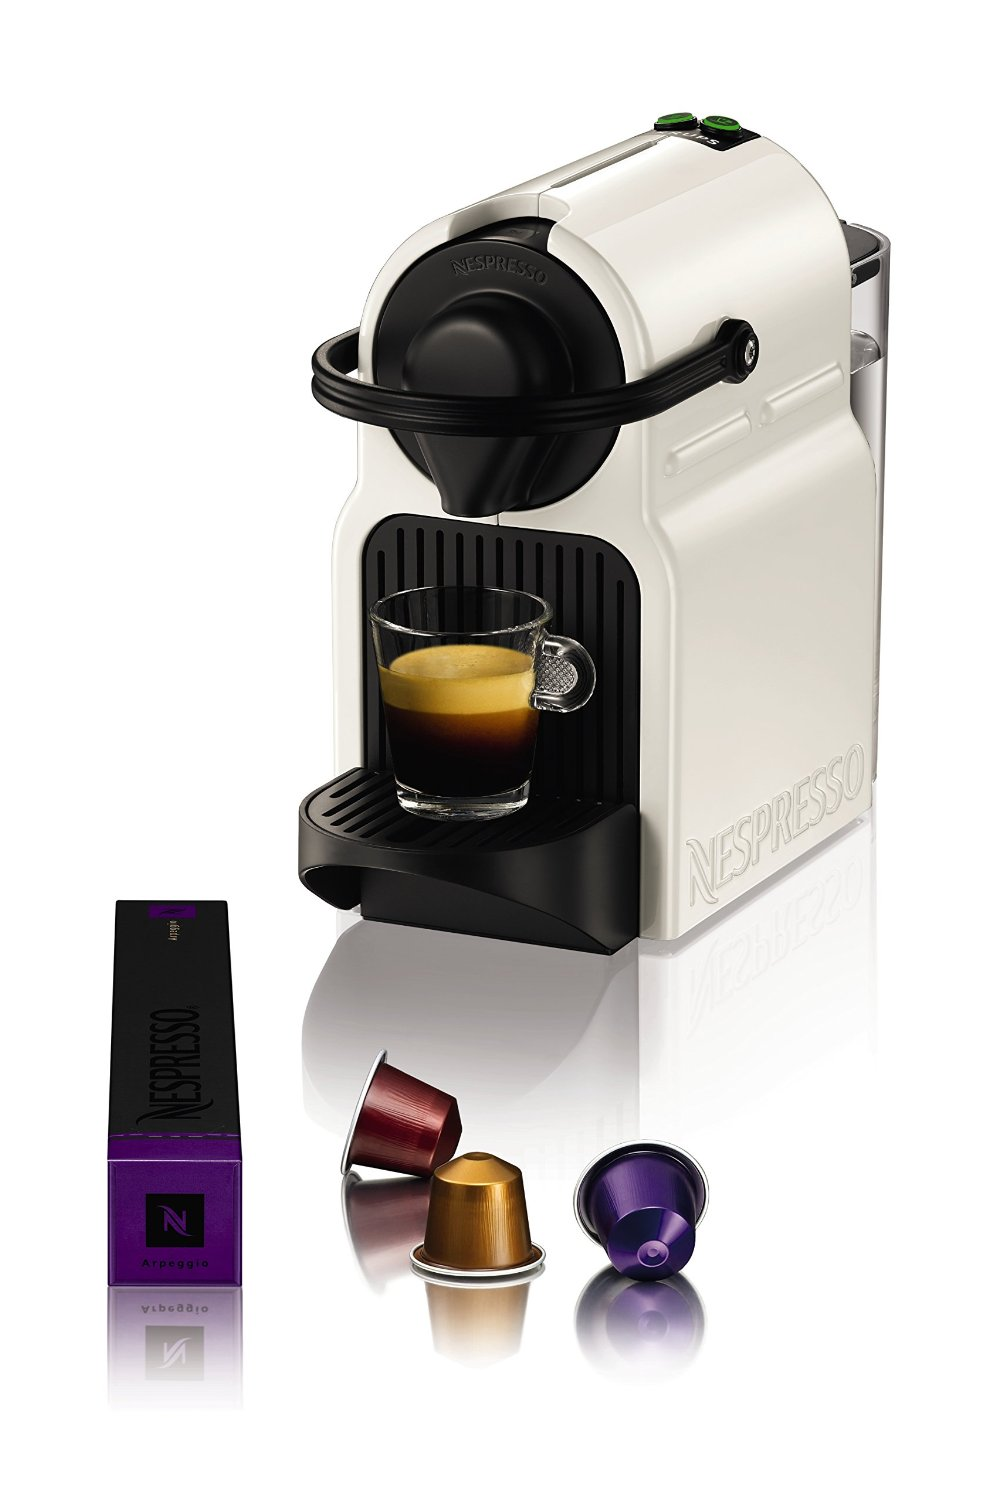 krups nespresso xn1001 inissia kaffeekapselmaschine in wei online g nstig bestellen. Black Bedroom Furniture Sets. Home Design Ideas